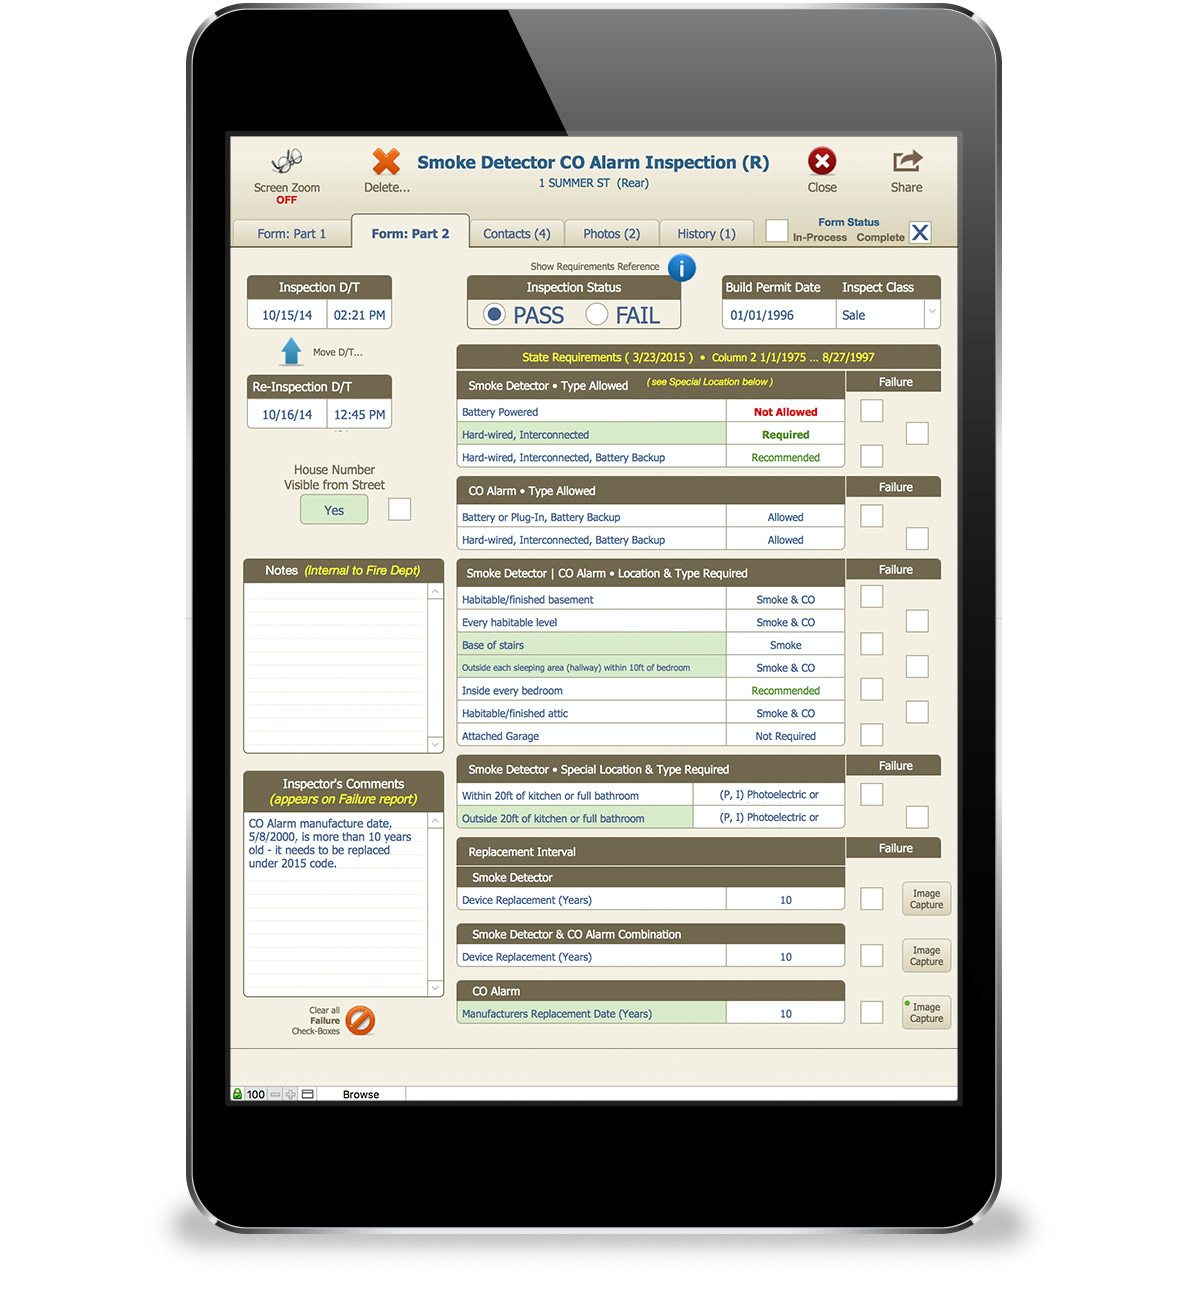 Inspections can be managed with StationSmarts's built-in checklists